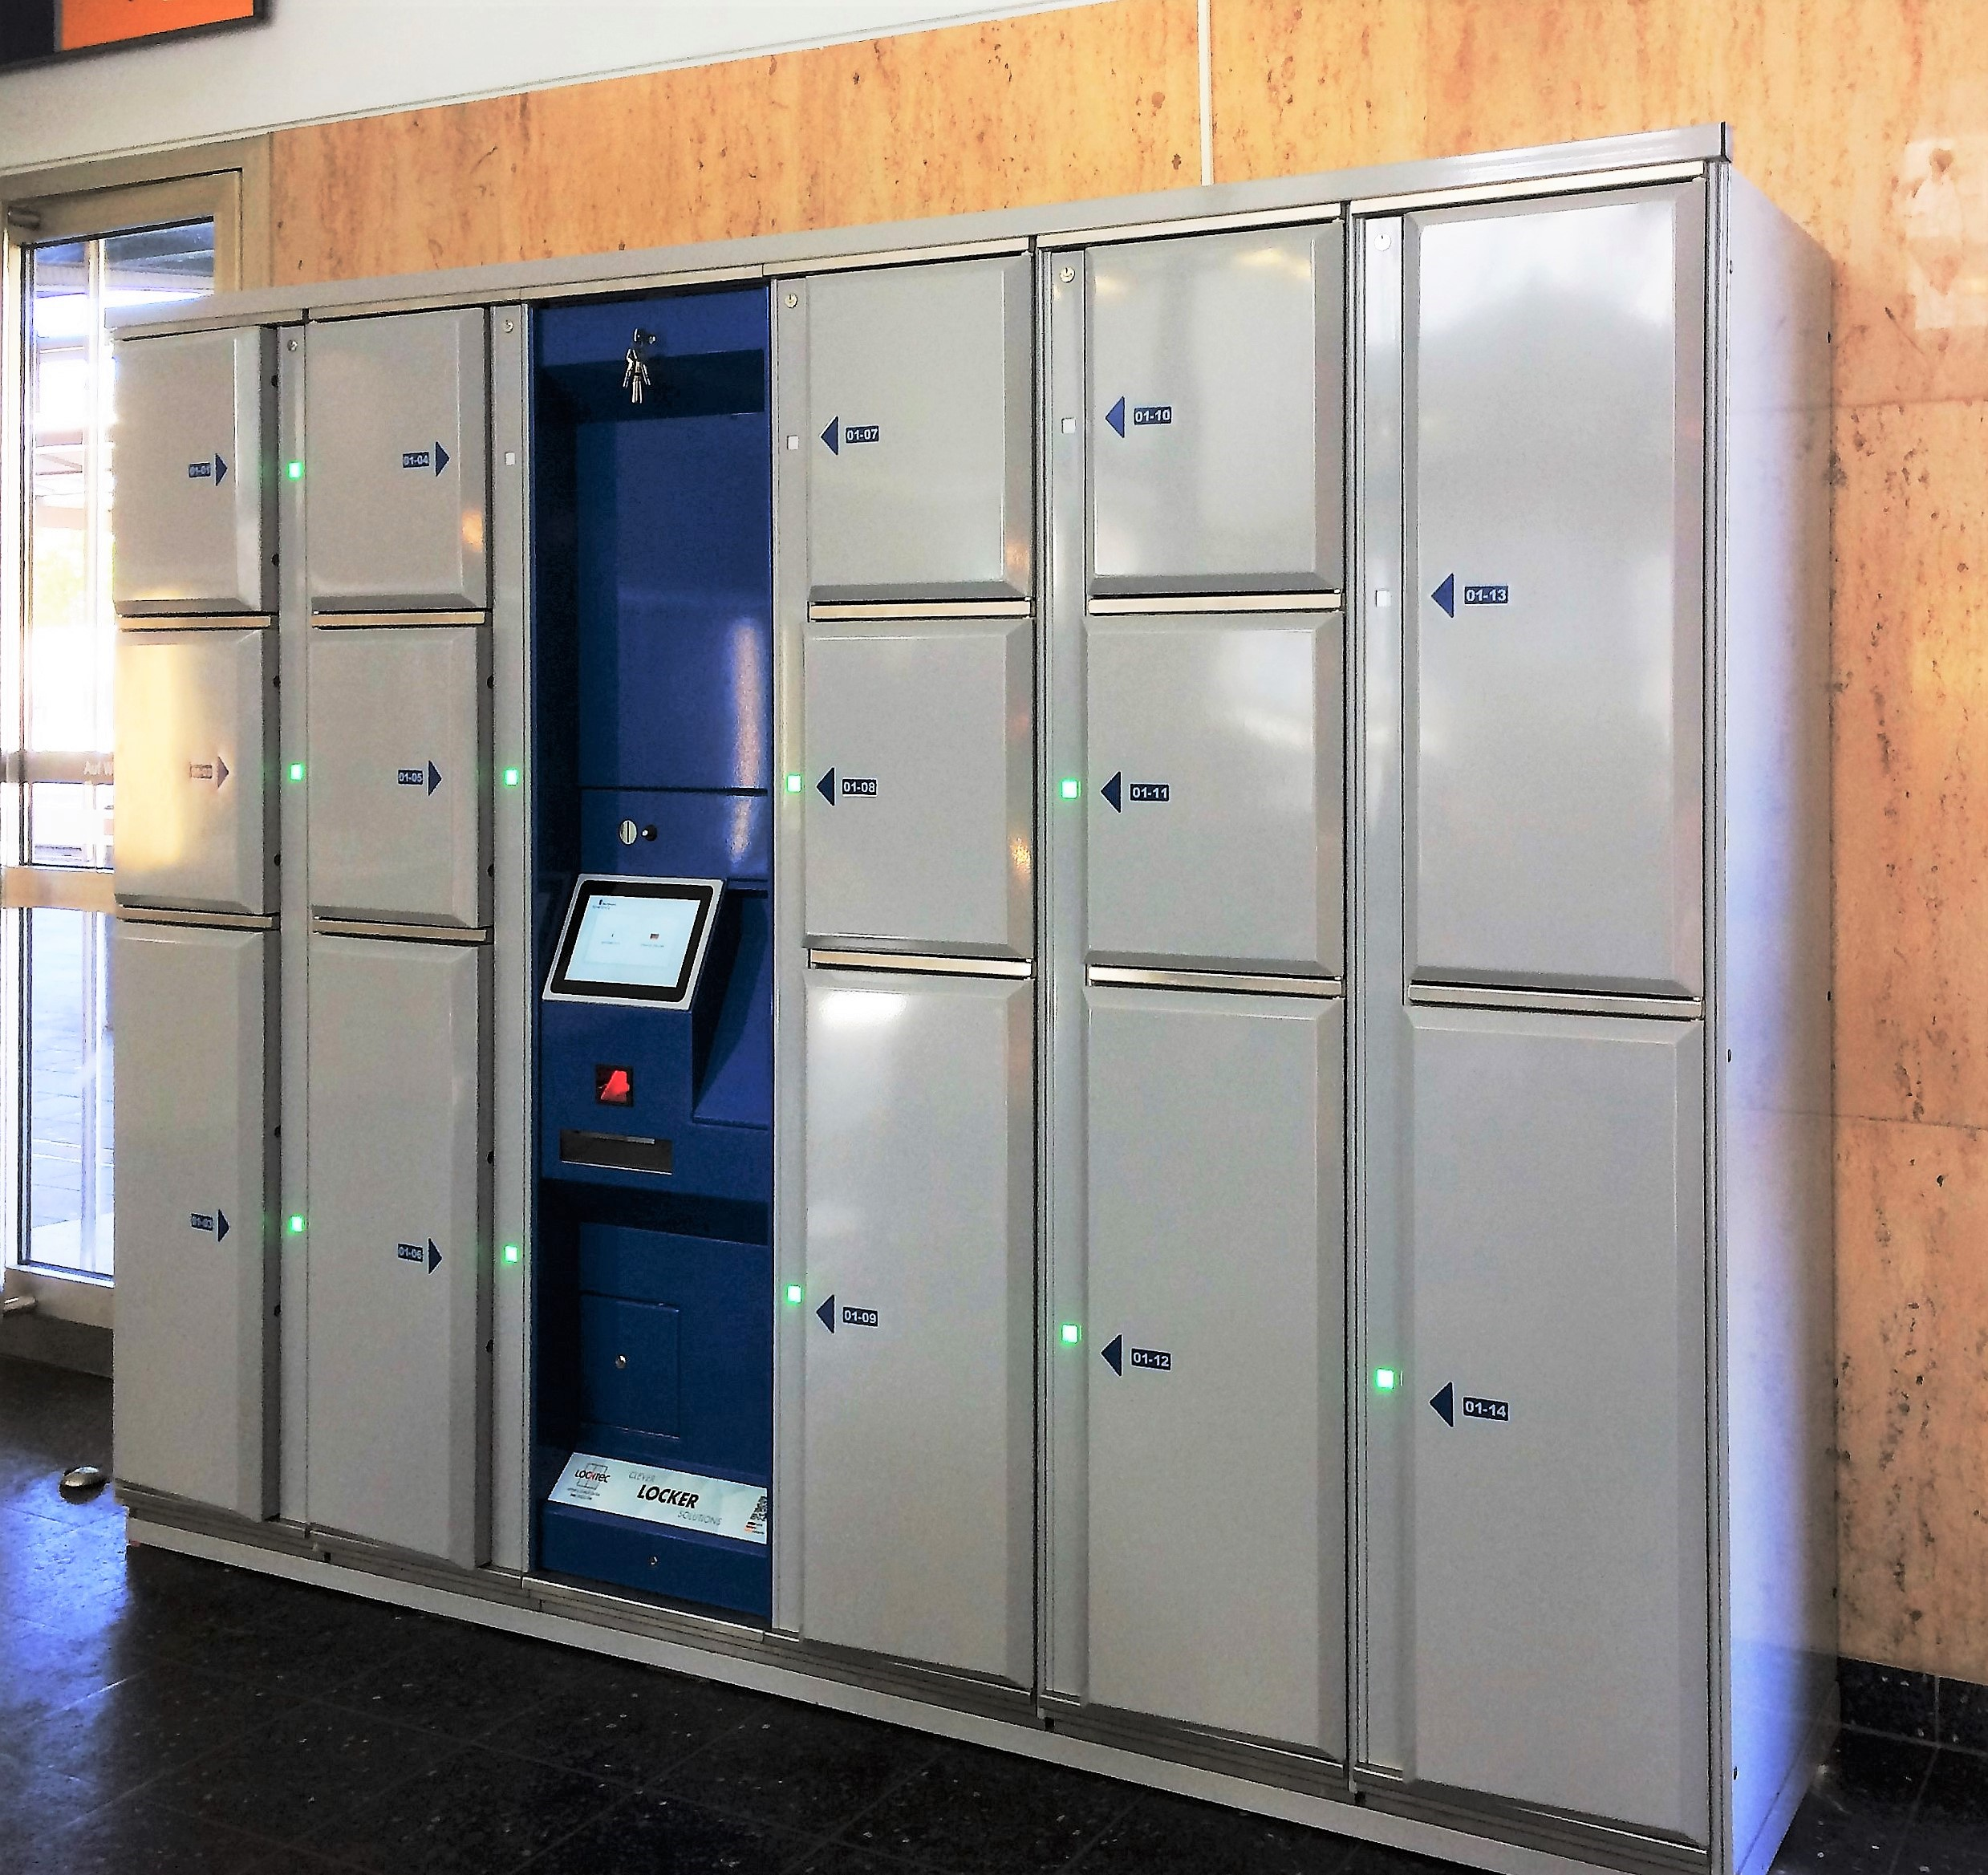 Smart lockers Locksafe5 - Smart luggage lockers for public institutions, administrations and city halls.